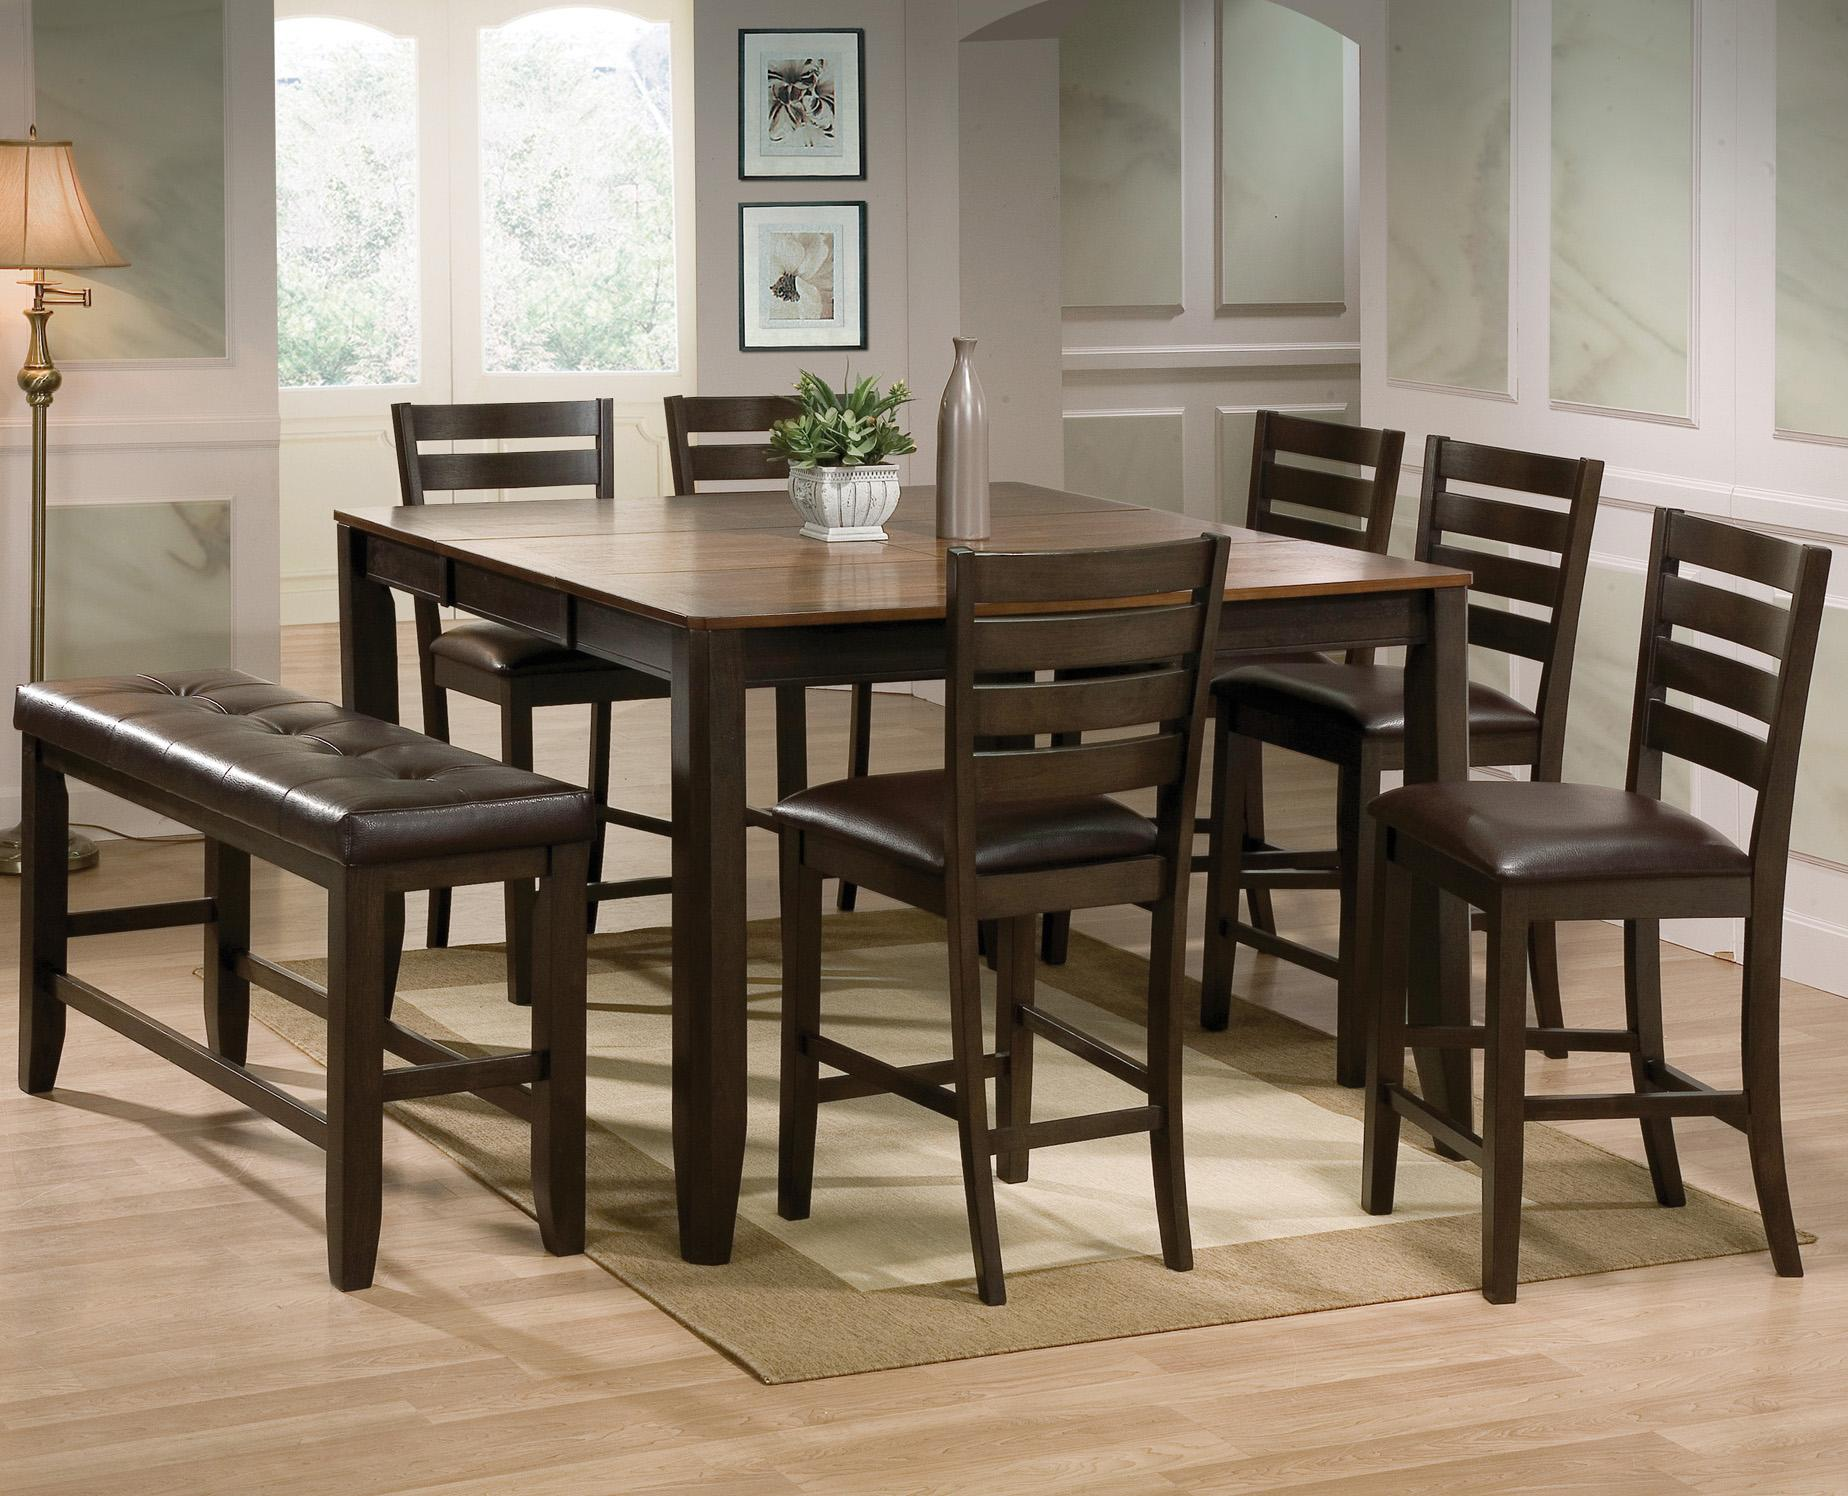 Crown Mark Elliott 8 Piece Counter Height Table Set - Item Number 2728T-5454 & Crown Mark Elliott 8 Piece Counter Height Table and Chairs with ...